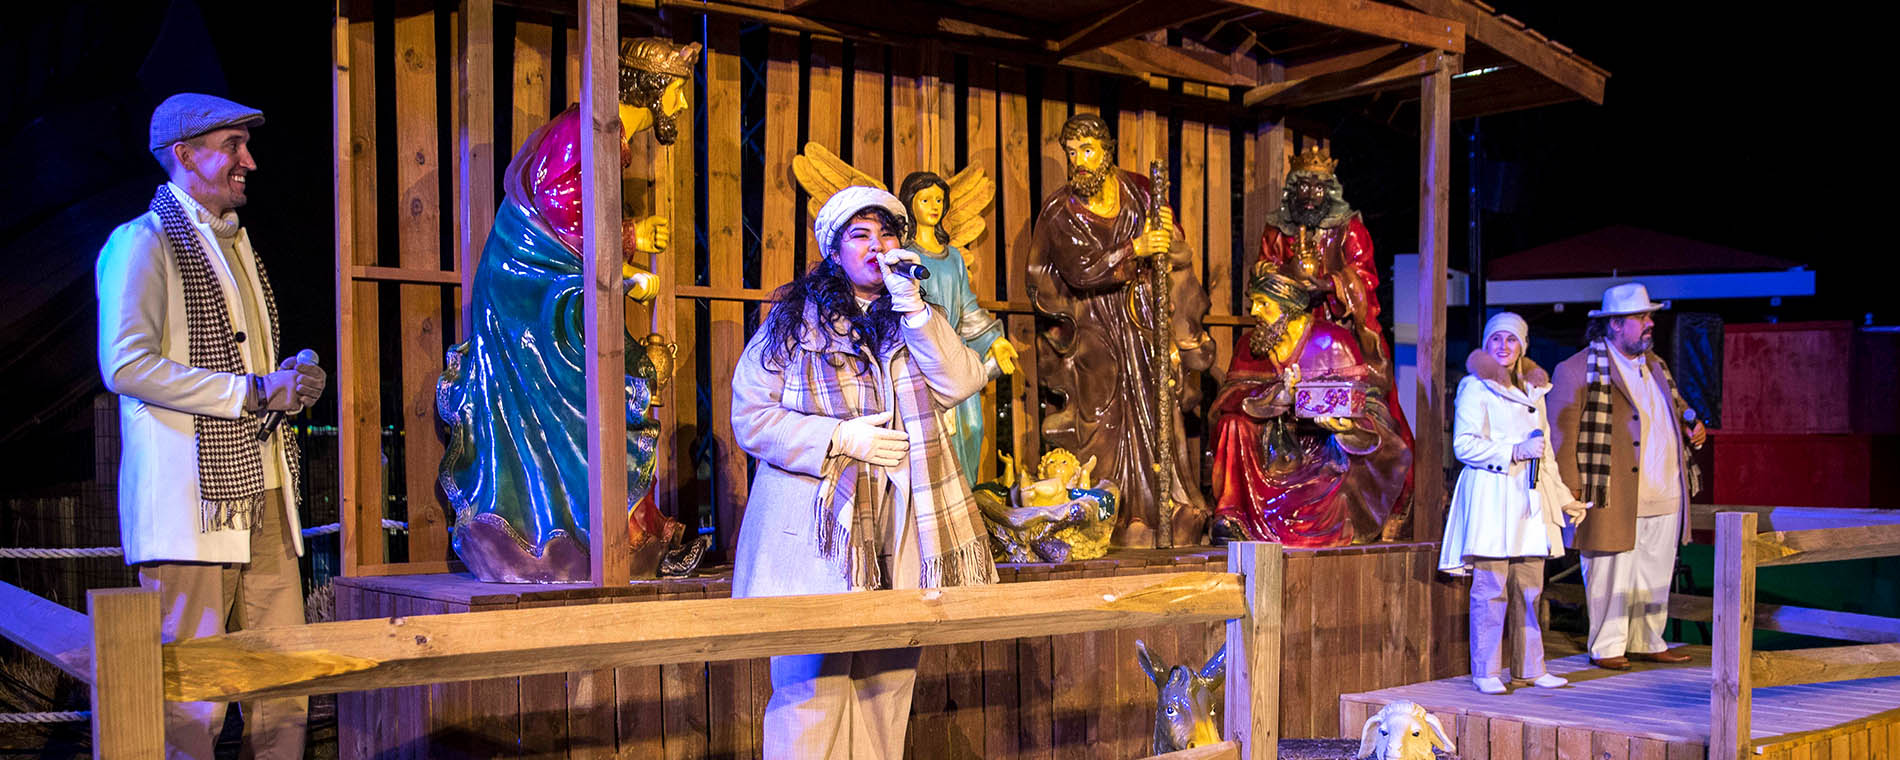 Live Nativity at Carowinds' Holiday Event